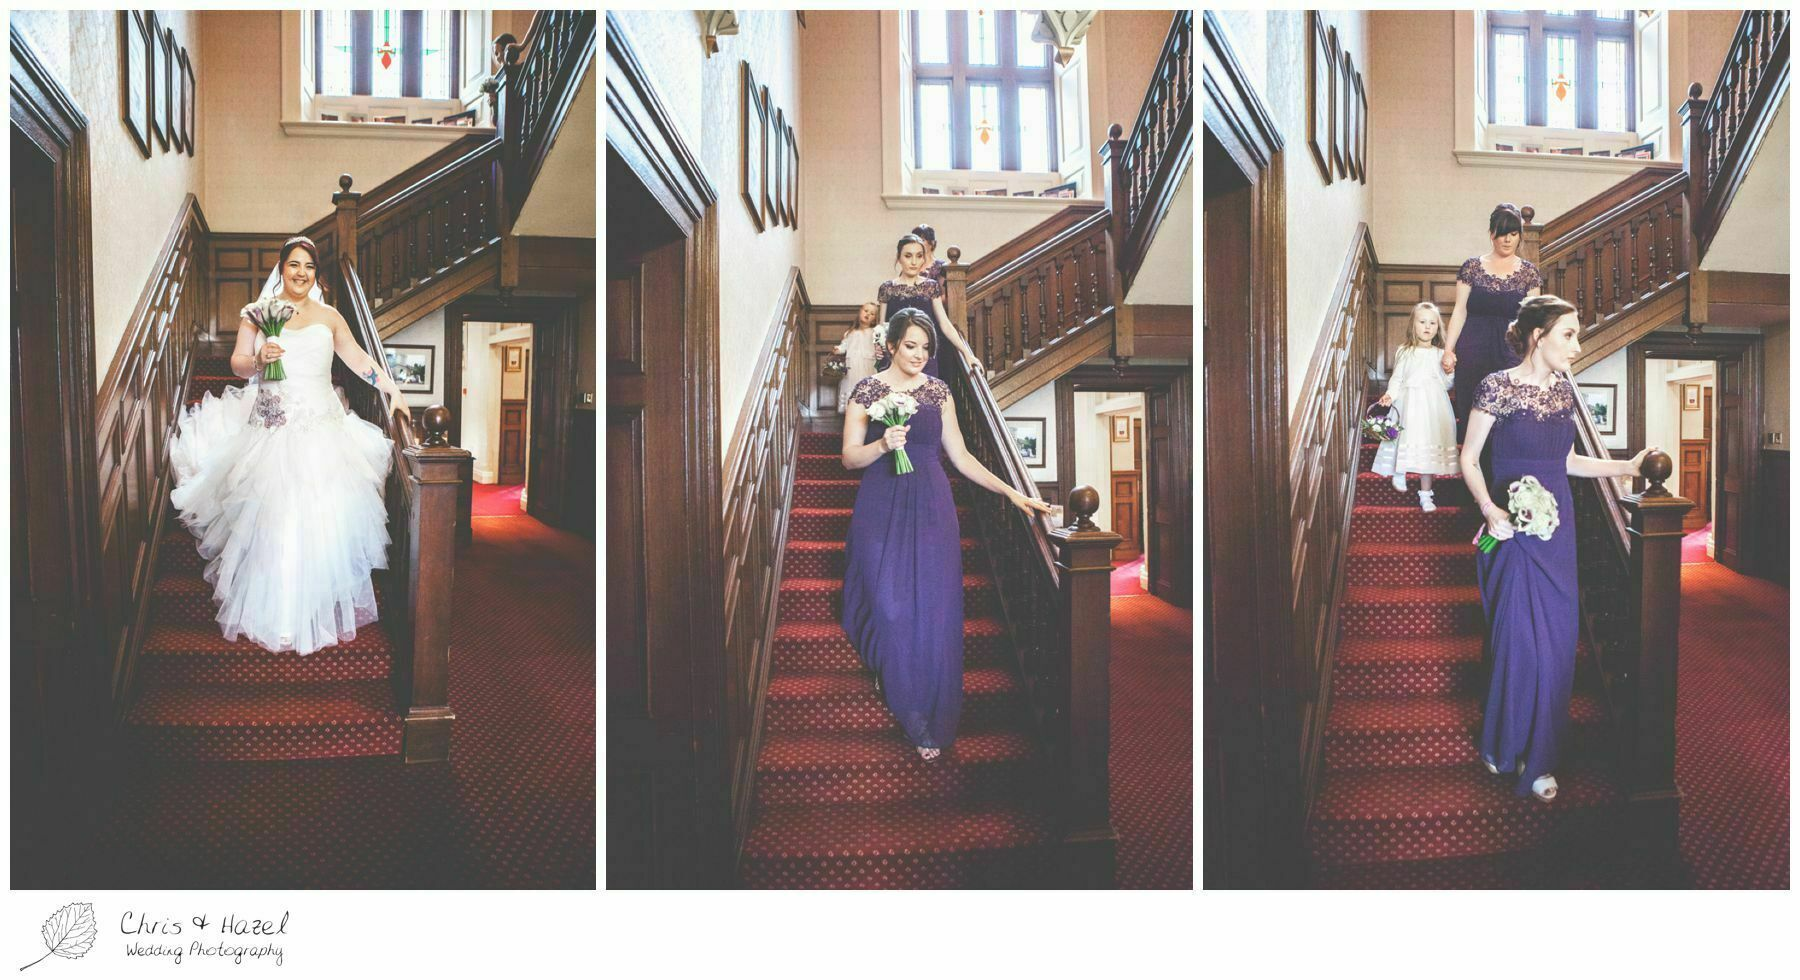 bride and bridesmaids walking down stairs, bagden hall wedding venue, documentary wedding photography, denny dale, huddersfield, Wedding Photographer, Bagden Hall, Wedding Photography, Chris and Hazel Wedding Photography, Alex tomenson, Vicky hunt